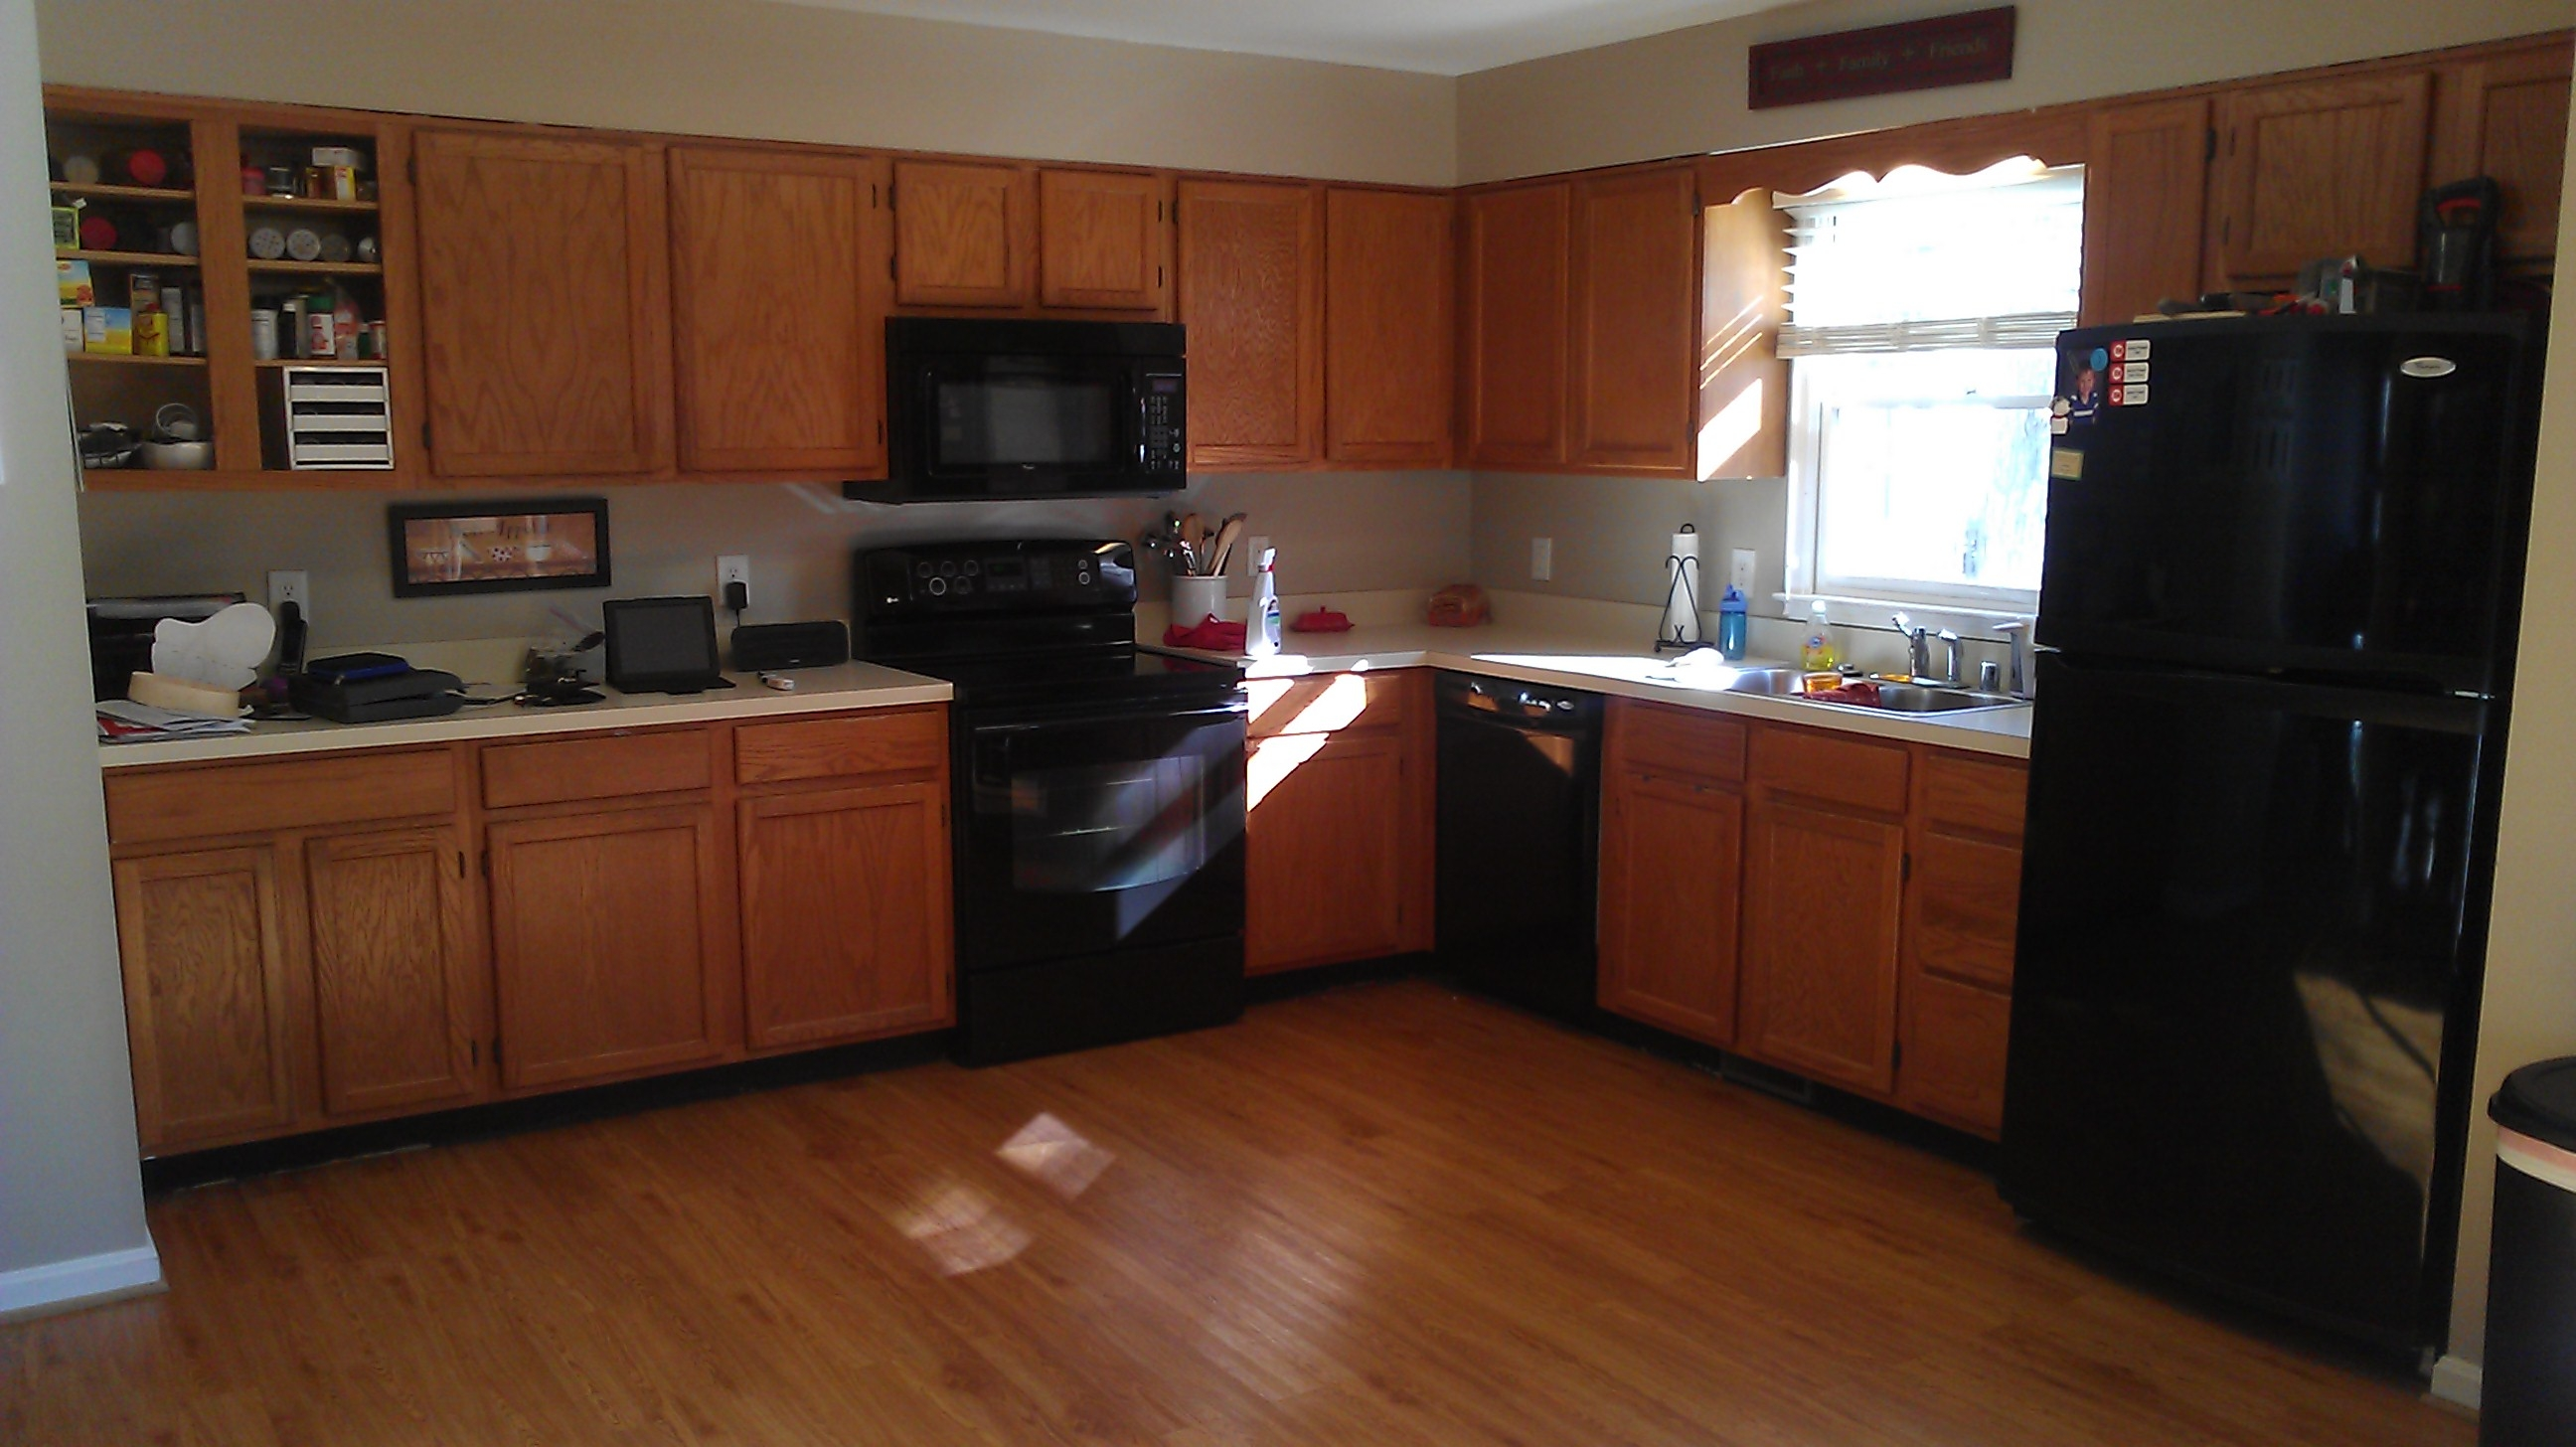 budget friendly kitchen remodel diy kitchen remodel budget Image